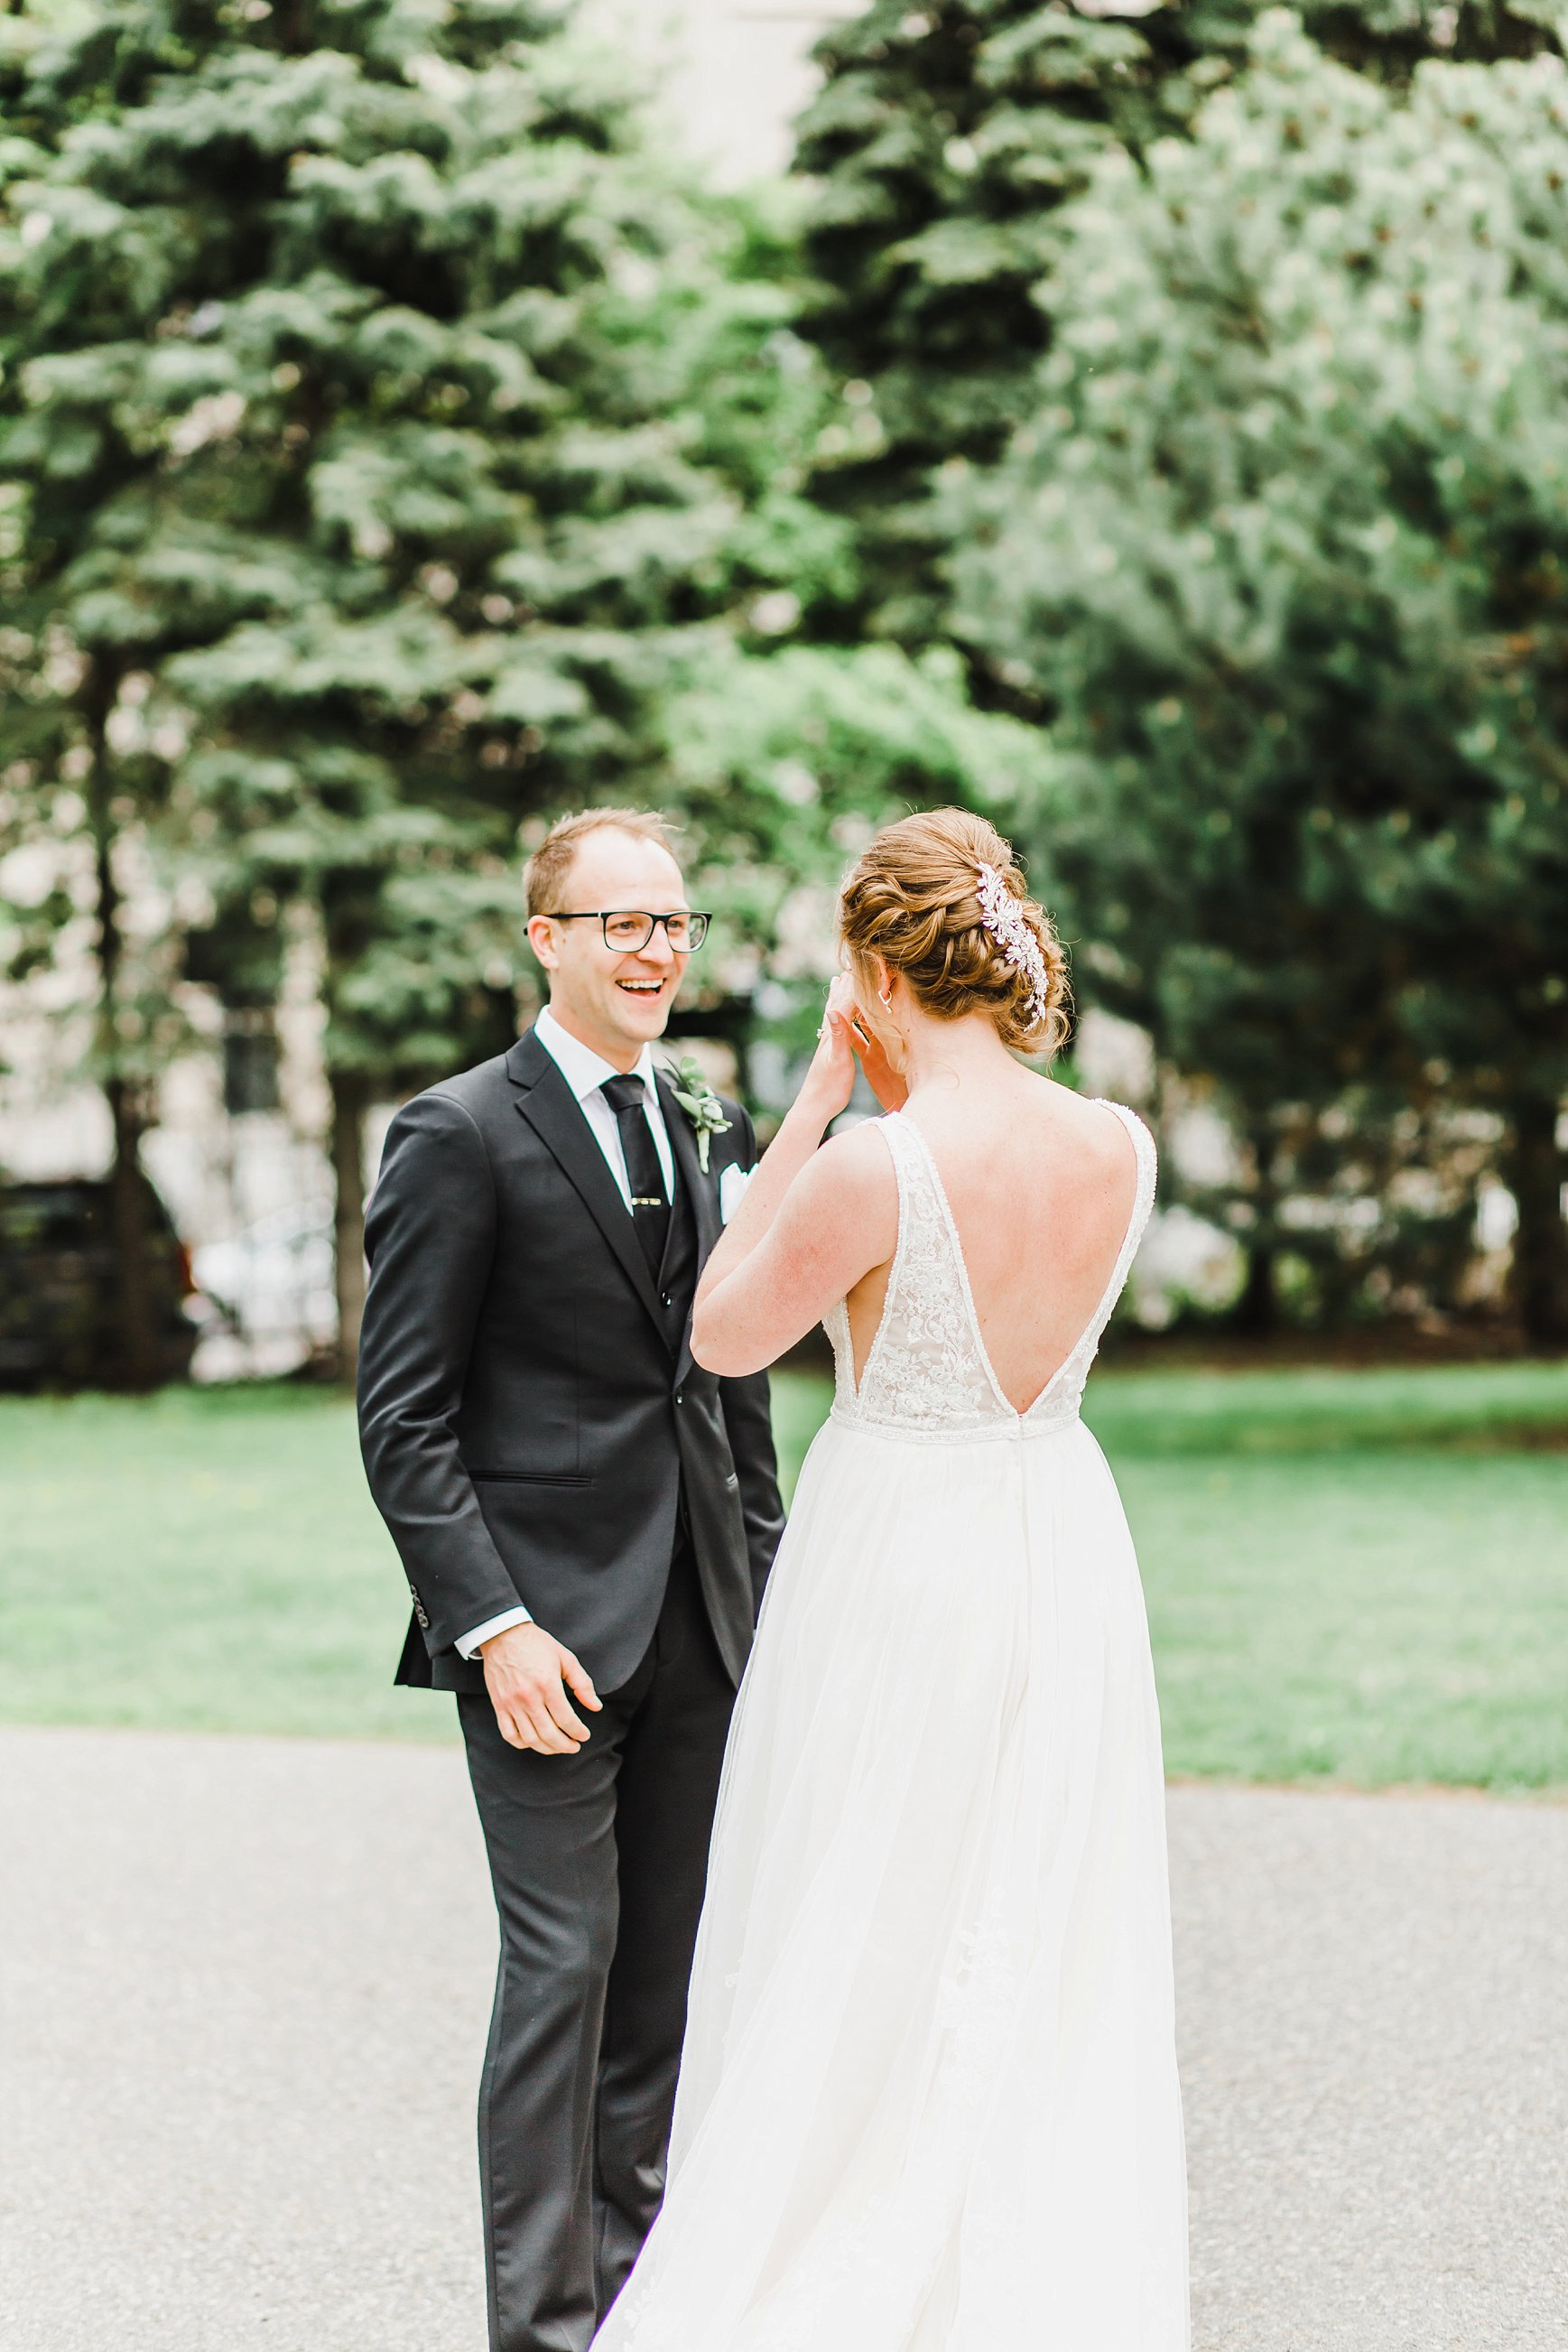 light airy indie fine art ottawa wedding photographer | Ali and Batoul Photography_0305.jpg